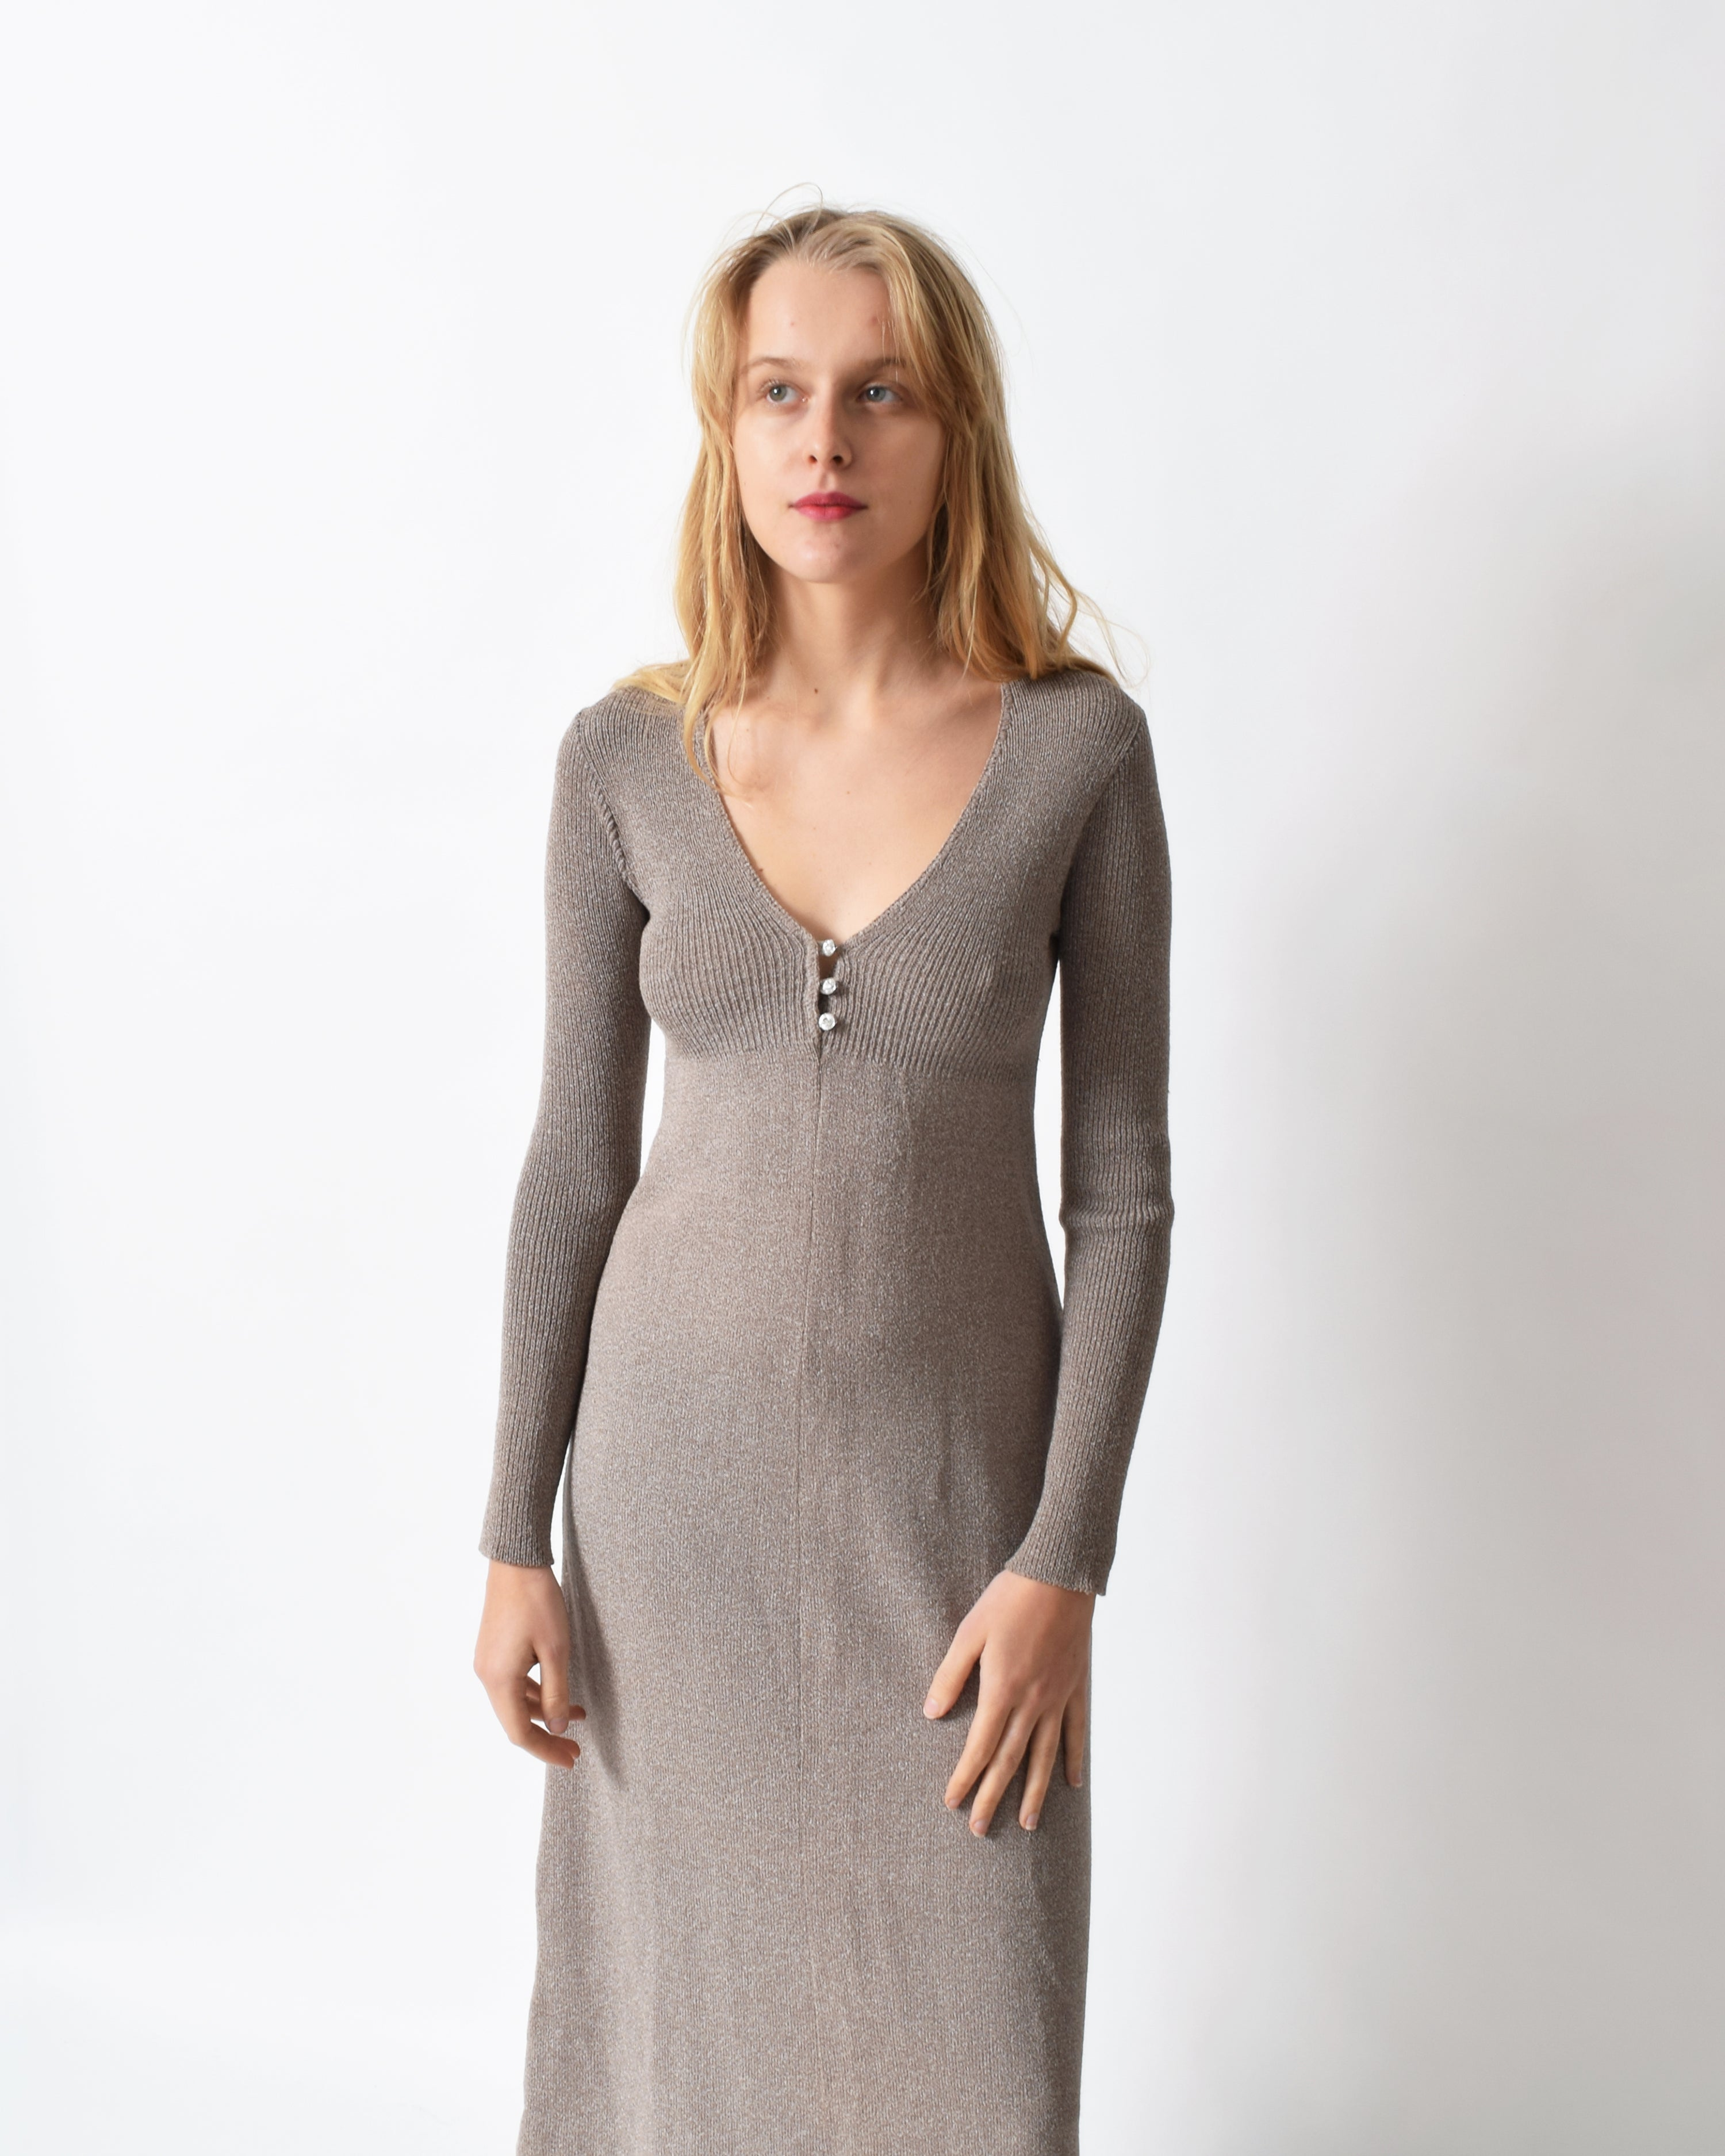 Vintage 1970s Taupe Sweater Dress